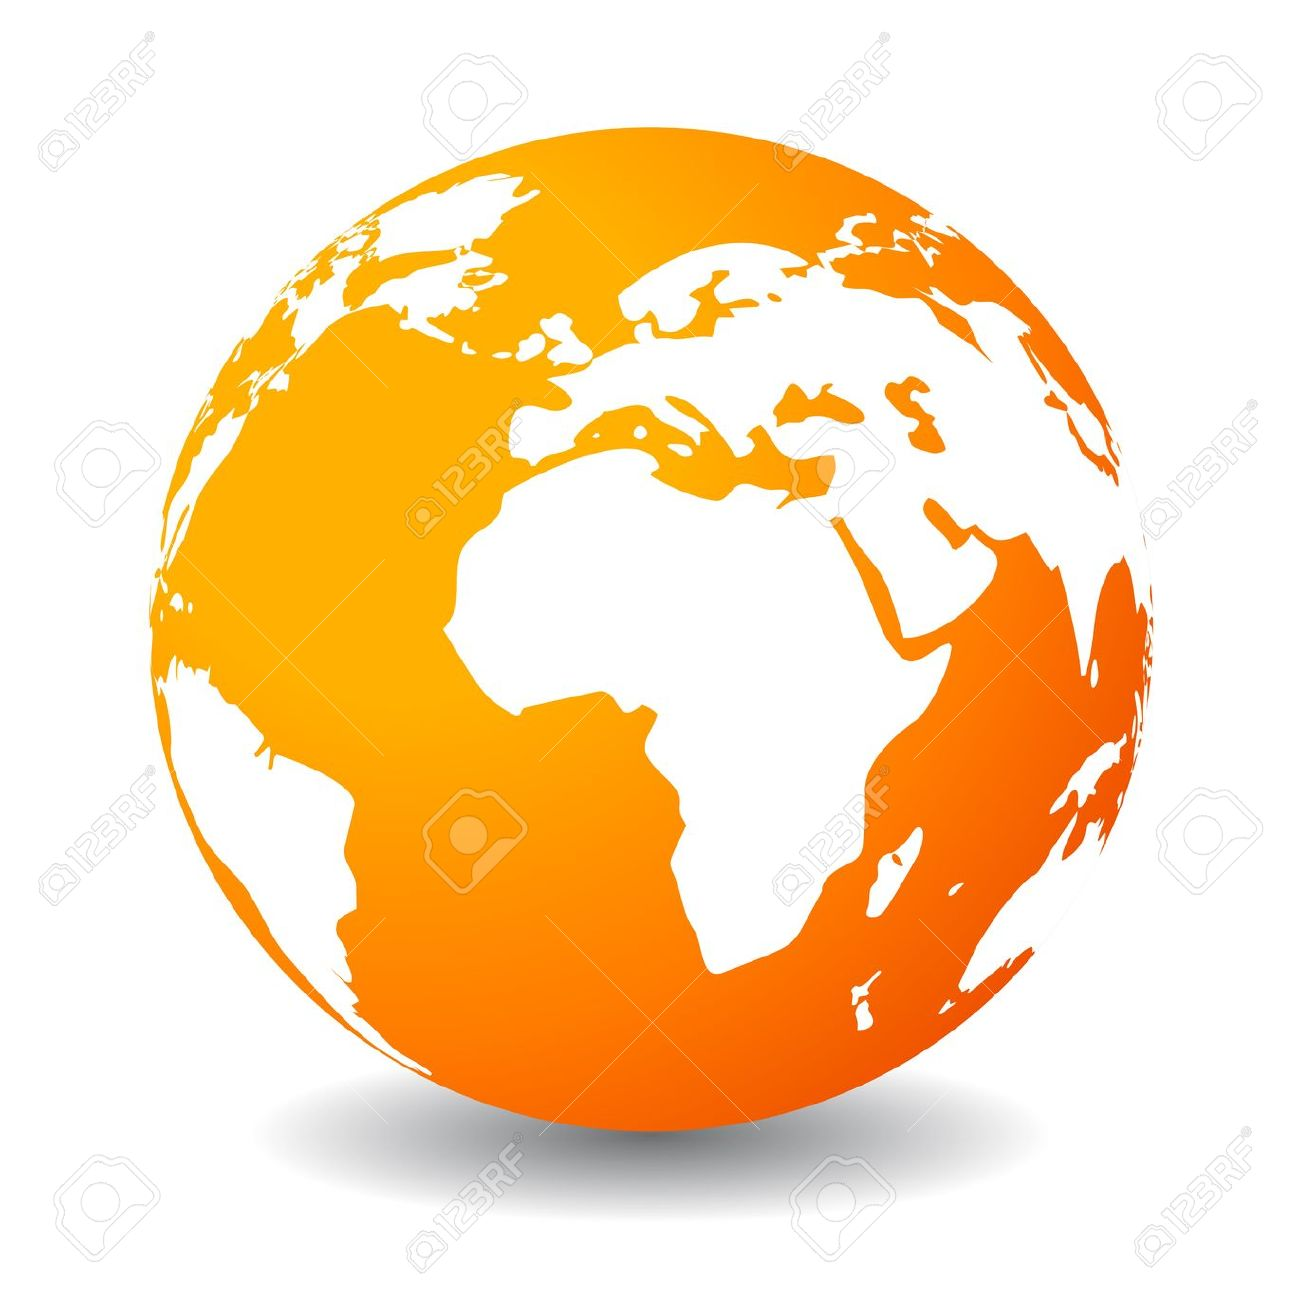 23,425 Earth Vector Stock Vector Illustration And Royalty Free.